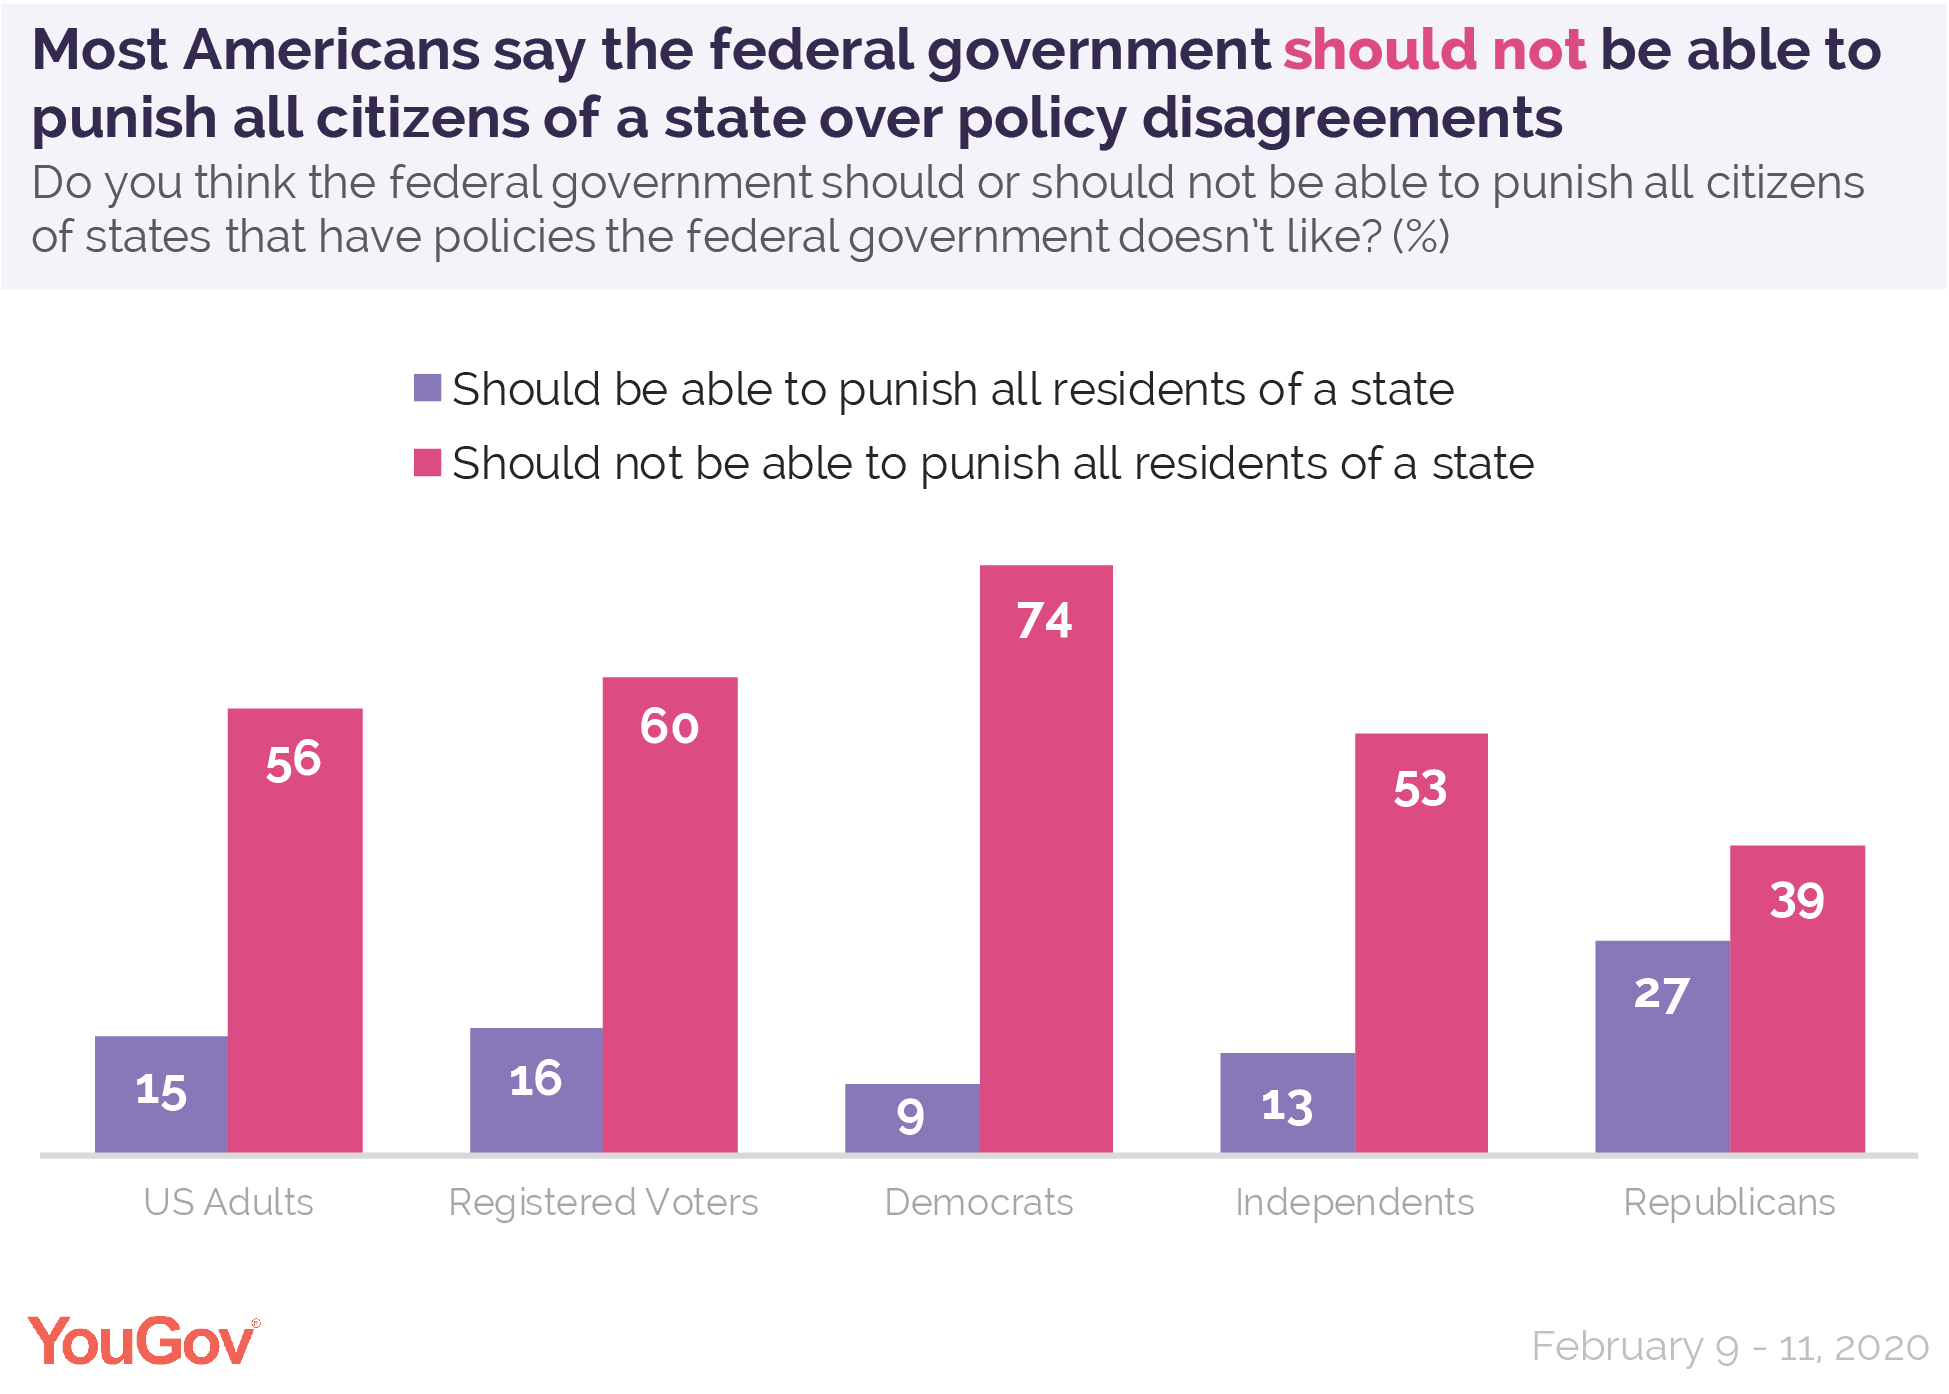 Most Americans say the federal government should not be able to punish all citizens of a state over policy disagreements